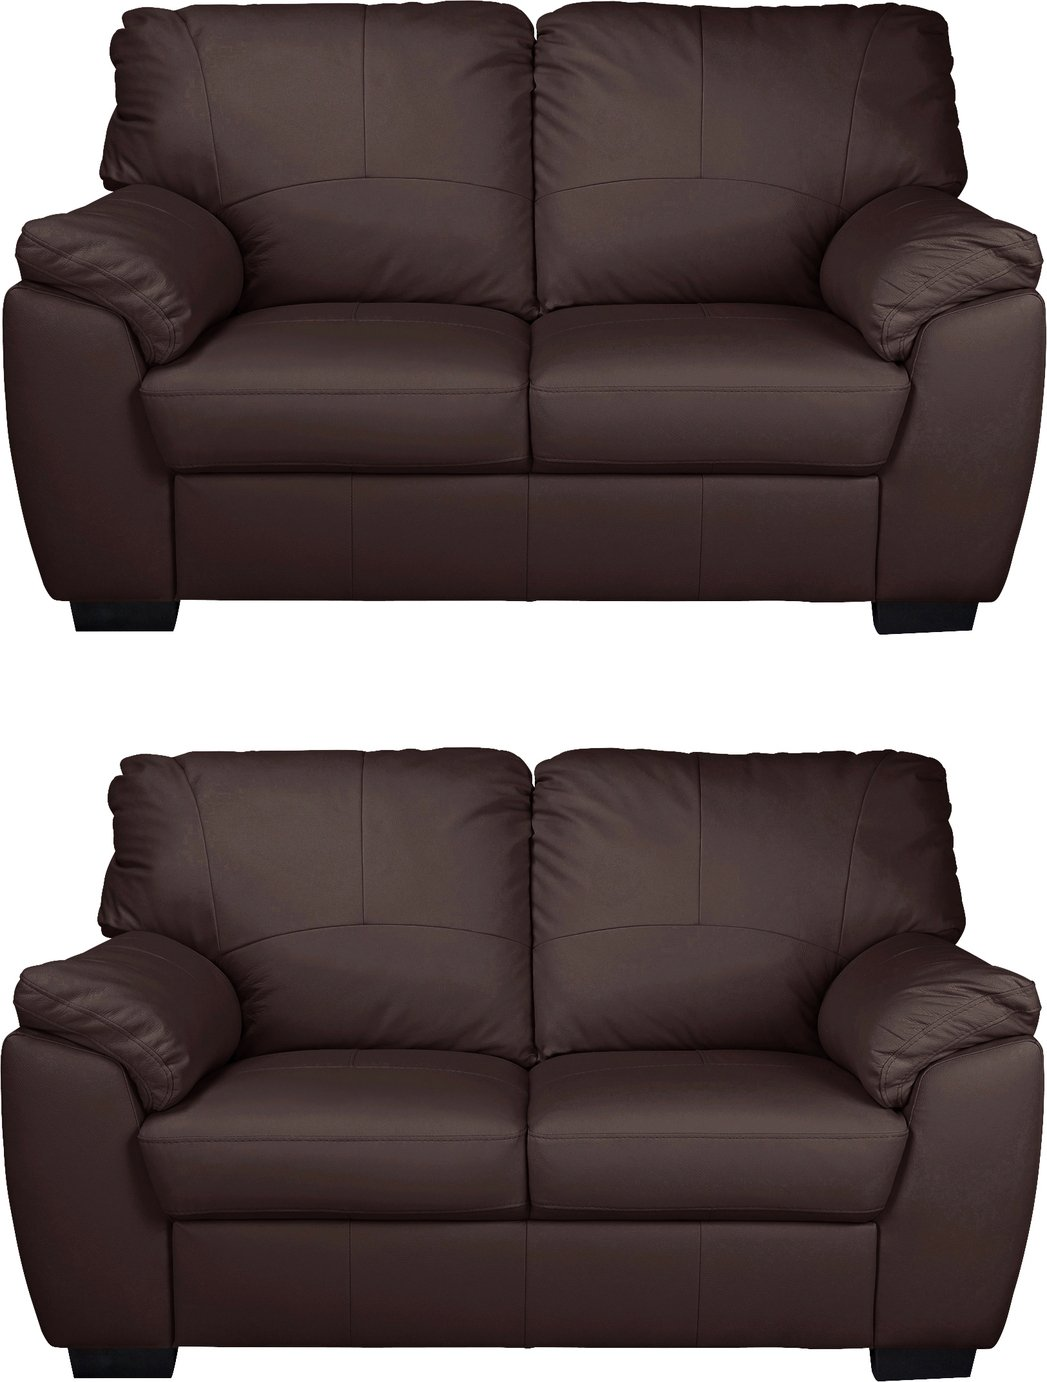 leather sofas glasgow area doc sofa bunk bed for sale uk sets argos home milano pair of 2 seater chocolate